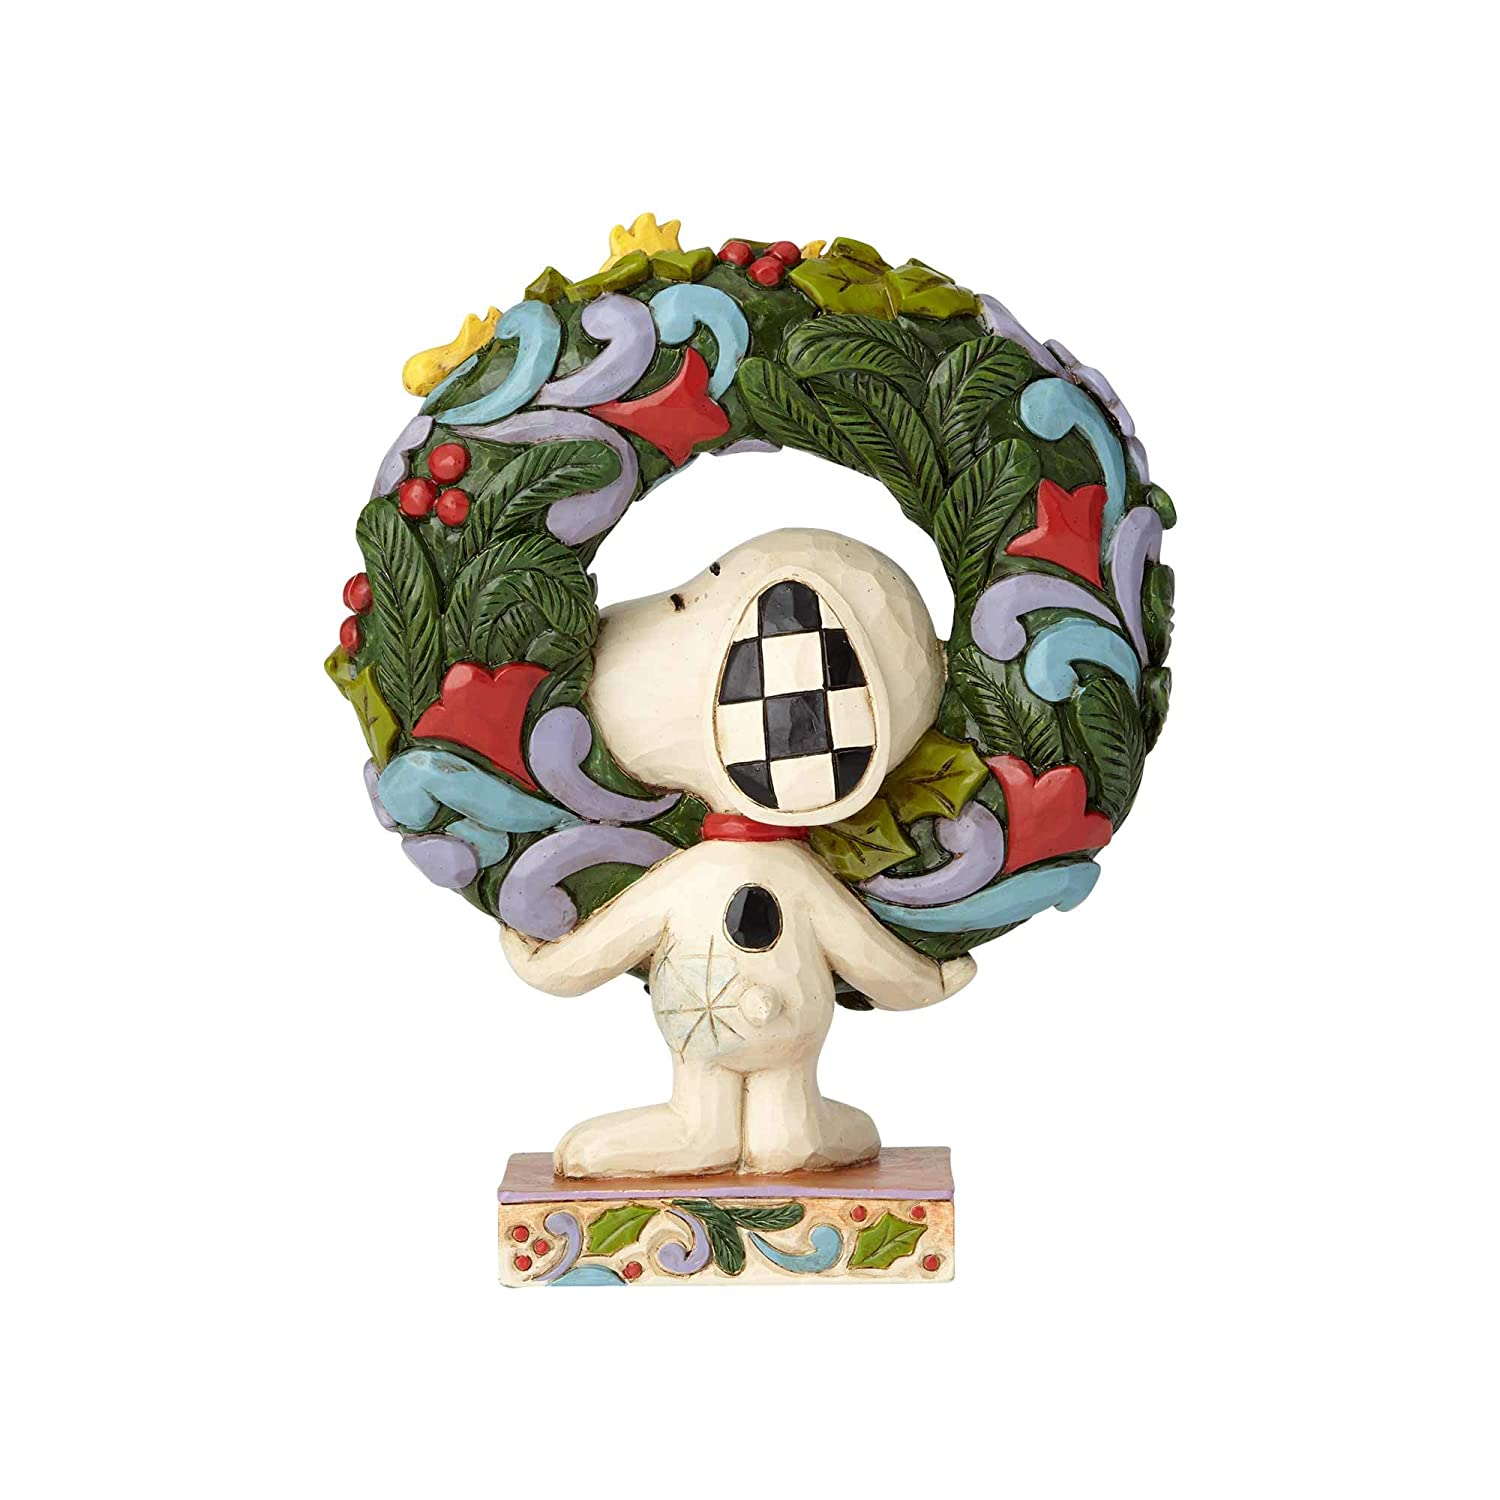 Enesco 6000984 Peanuts by Jim Shore Snoopy with Woodstock Wreath Figurine 5.75 Multicolor